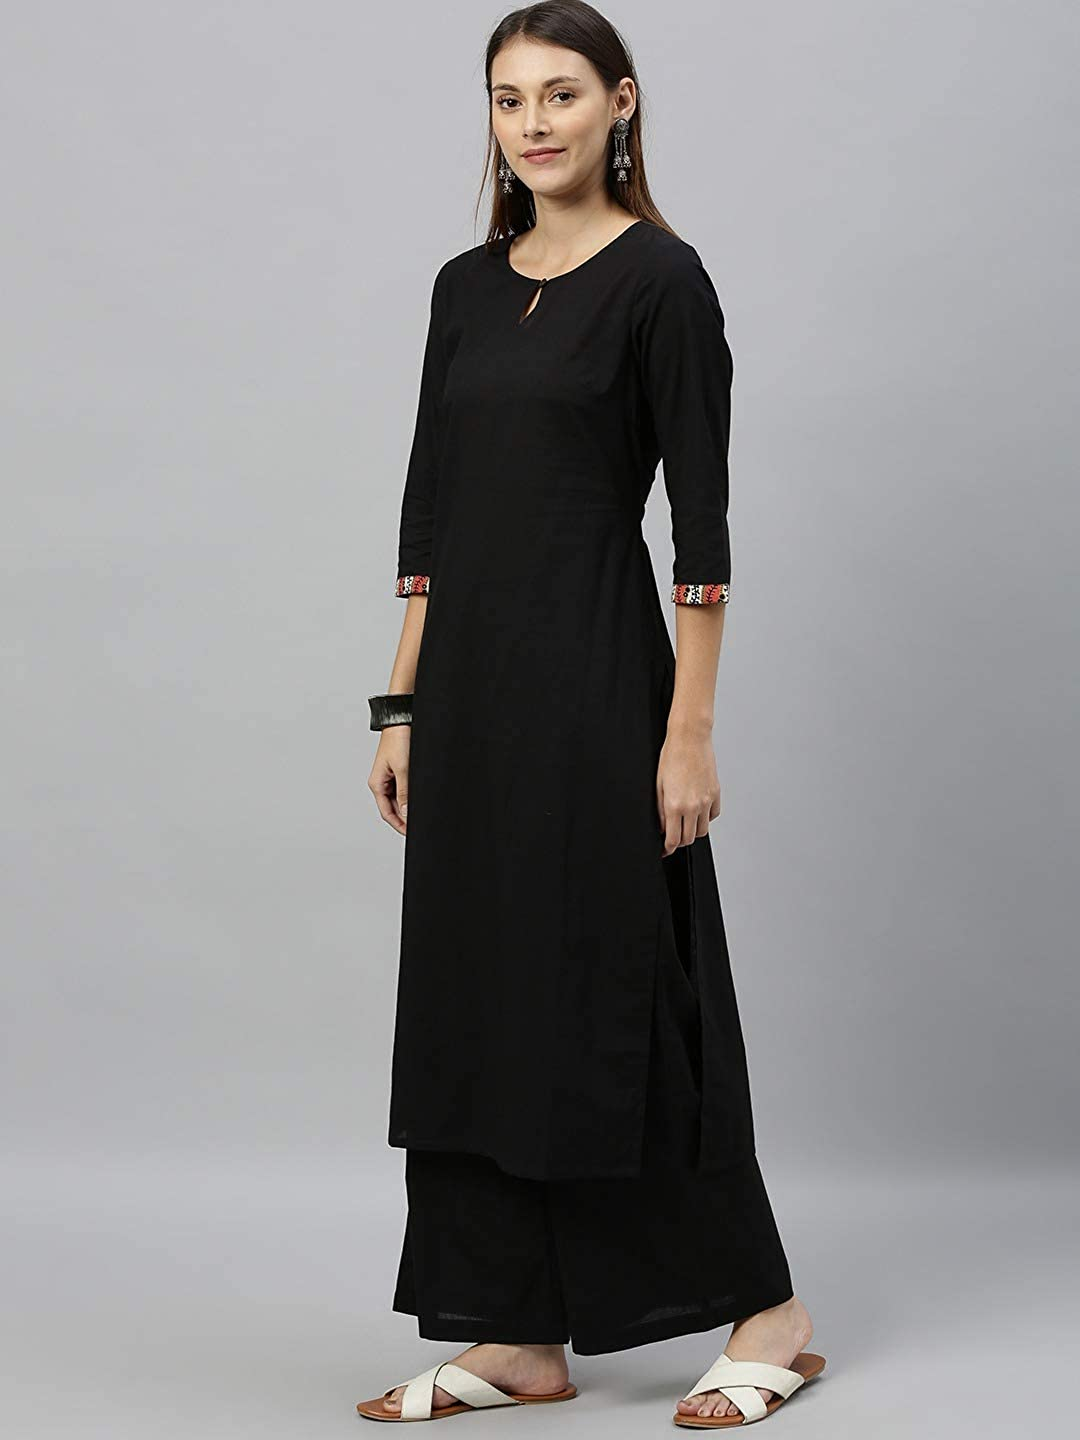 Lady Dwiza Indian Ethnic Designer Party Wear Kurta with Trousers or Palazzos & Dupatta for Women Black & Red